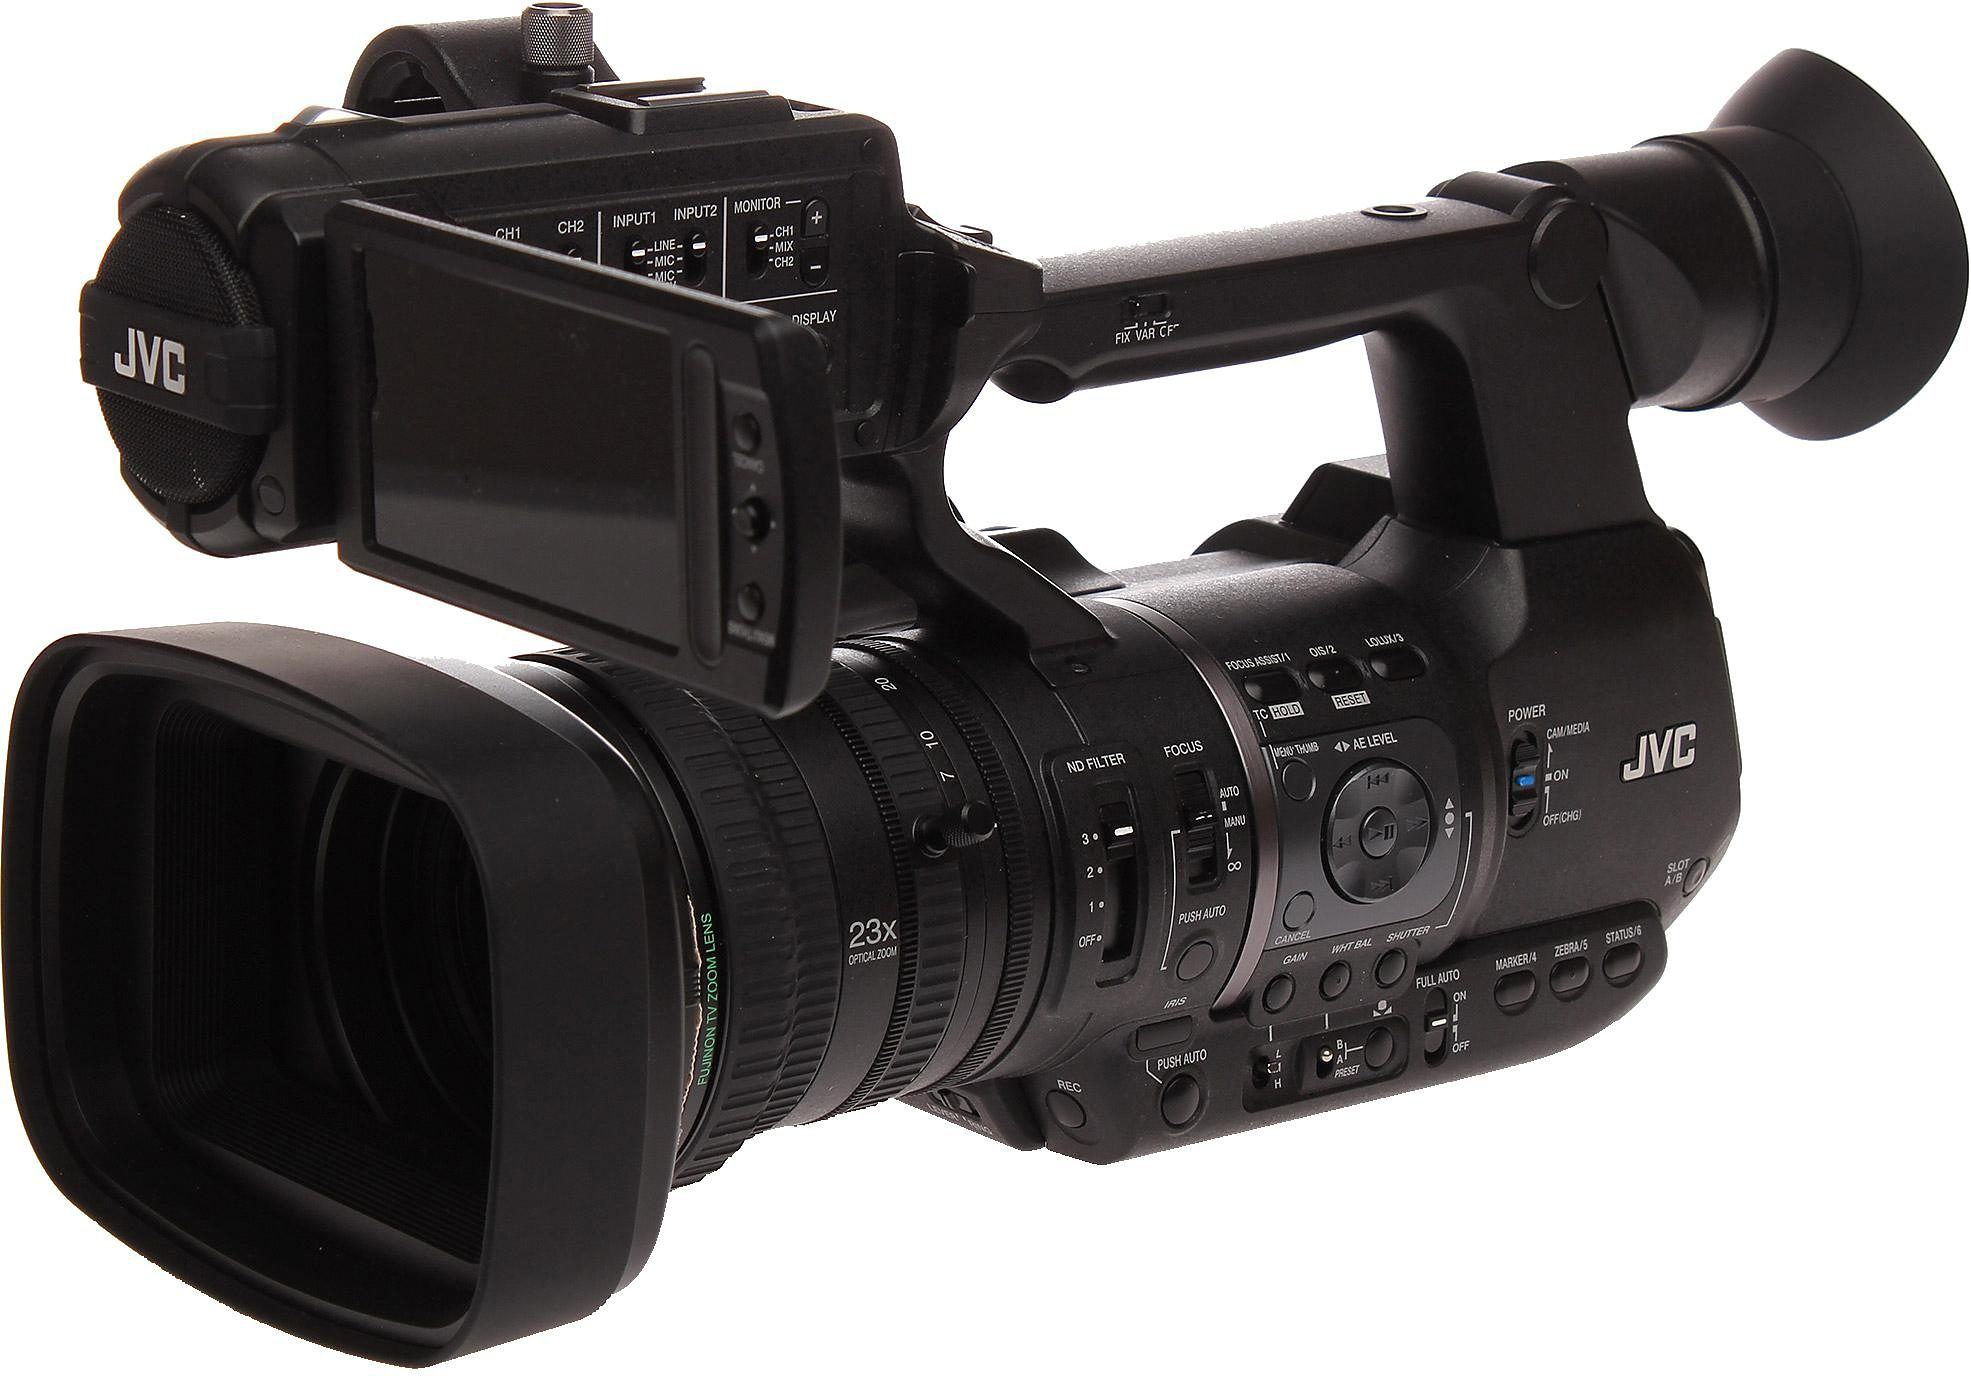 JVC GY-HM600 1080p (Full HD) Camcorder, GPS